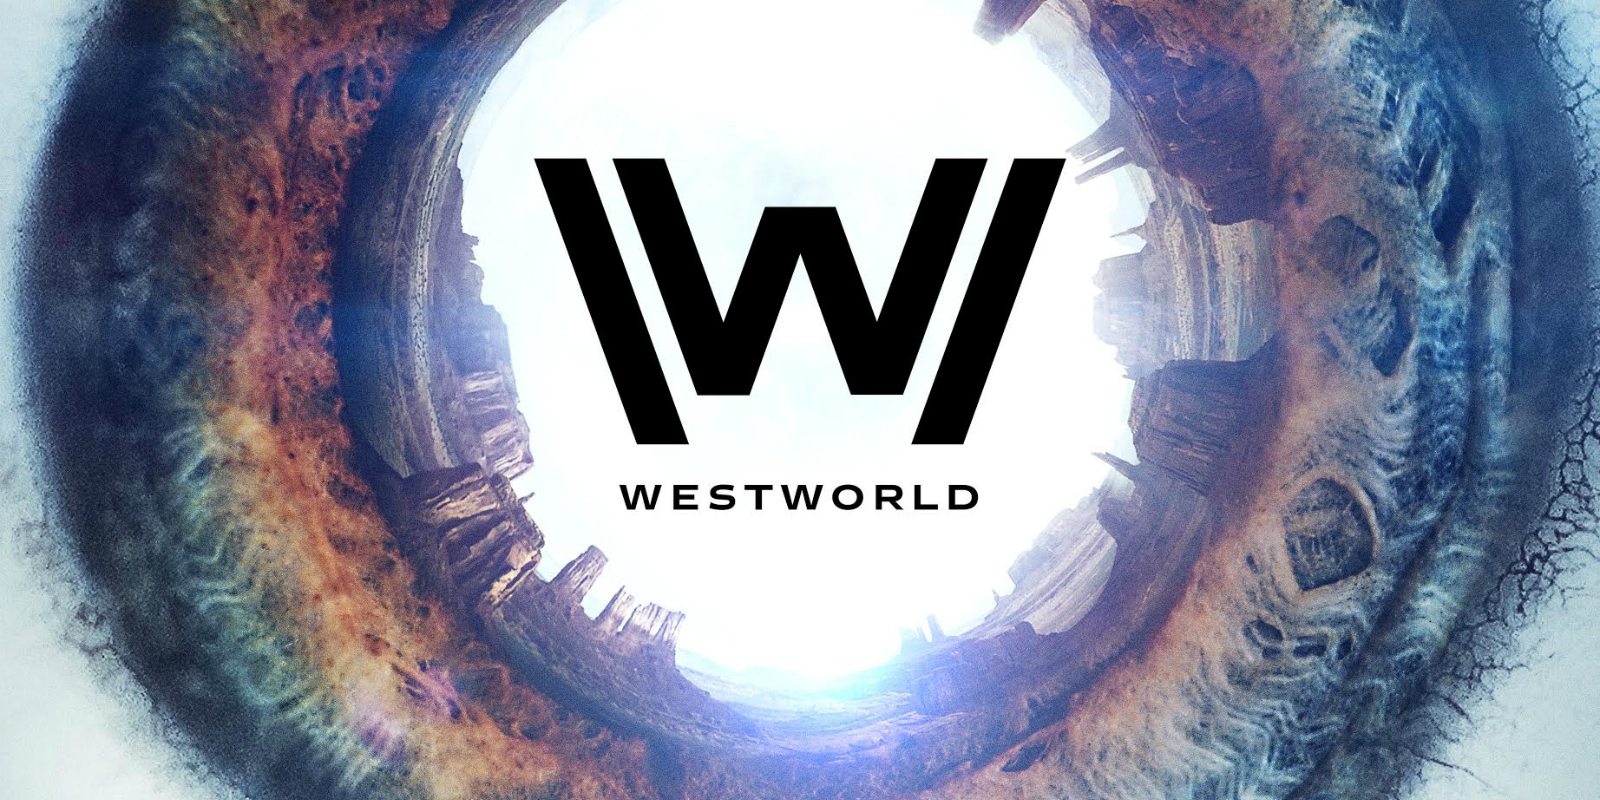 WestWorld Wallpapers High Quality Download 1600x800